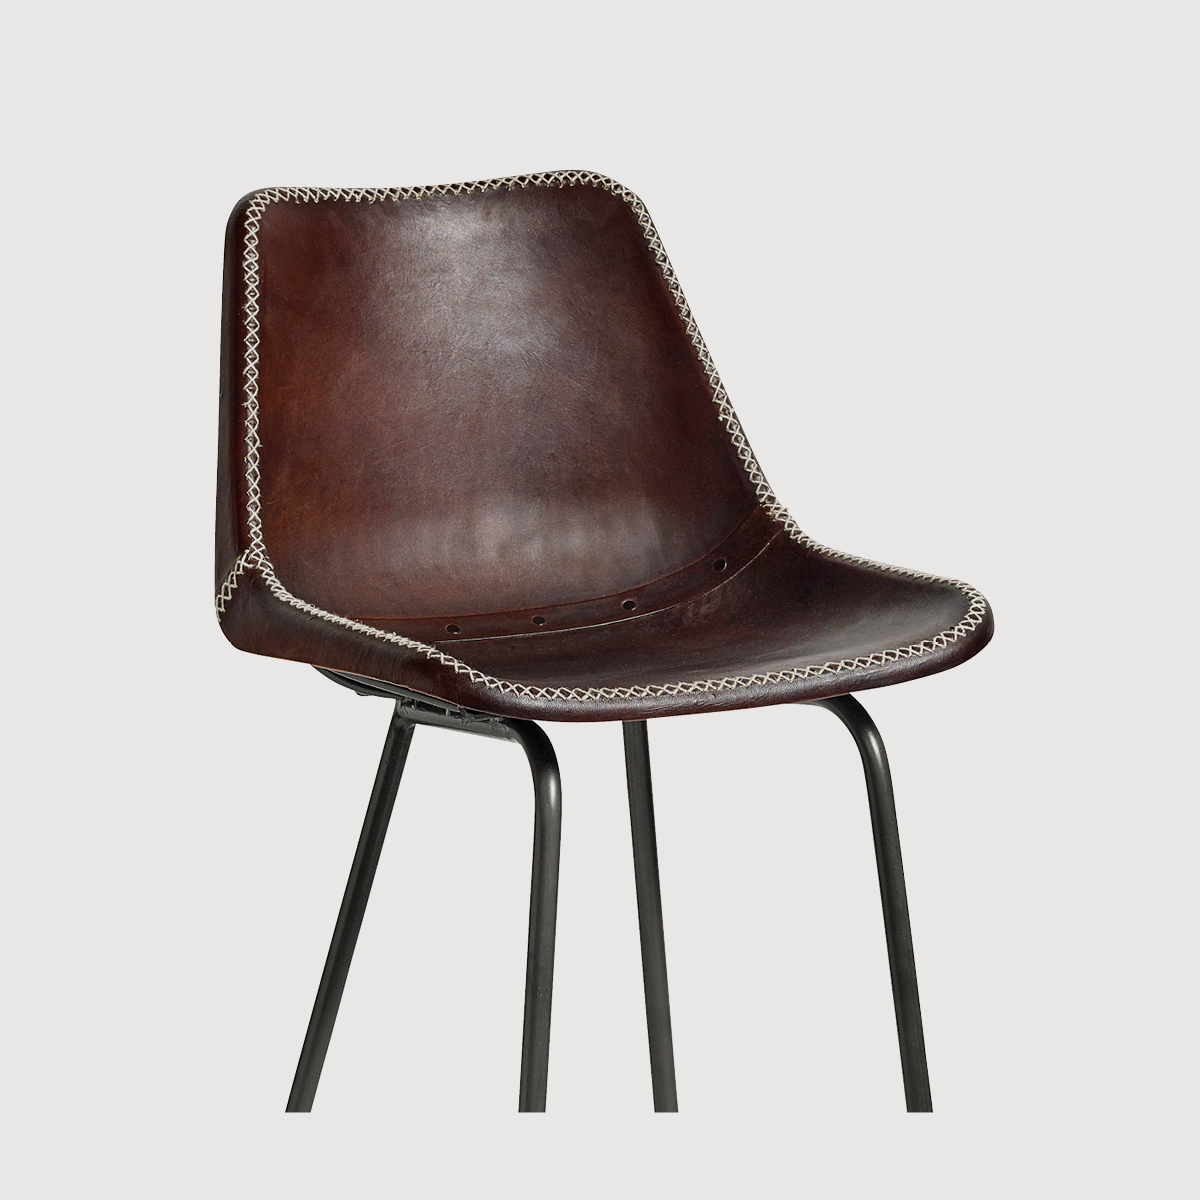 Mersey Leather Chair with Iron Legs – Chocolate Brown gallery image